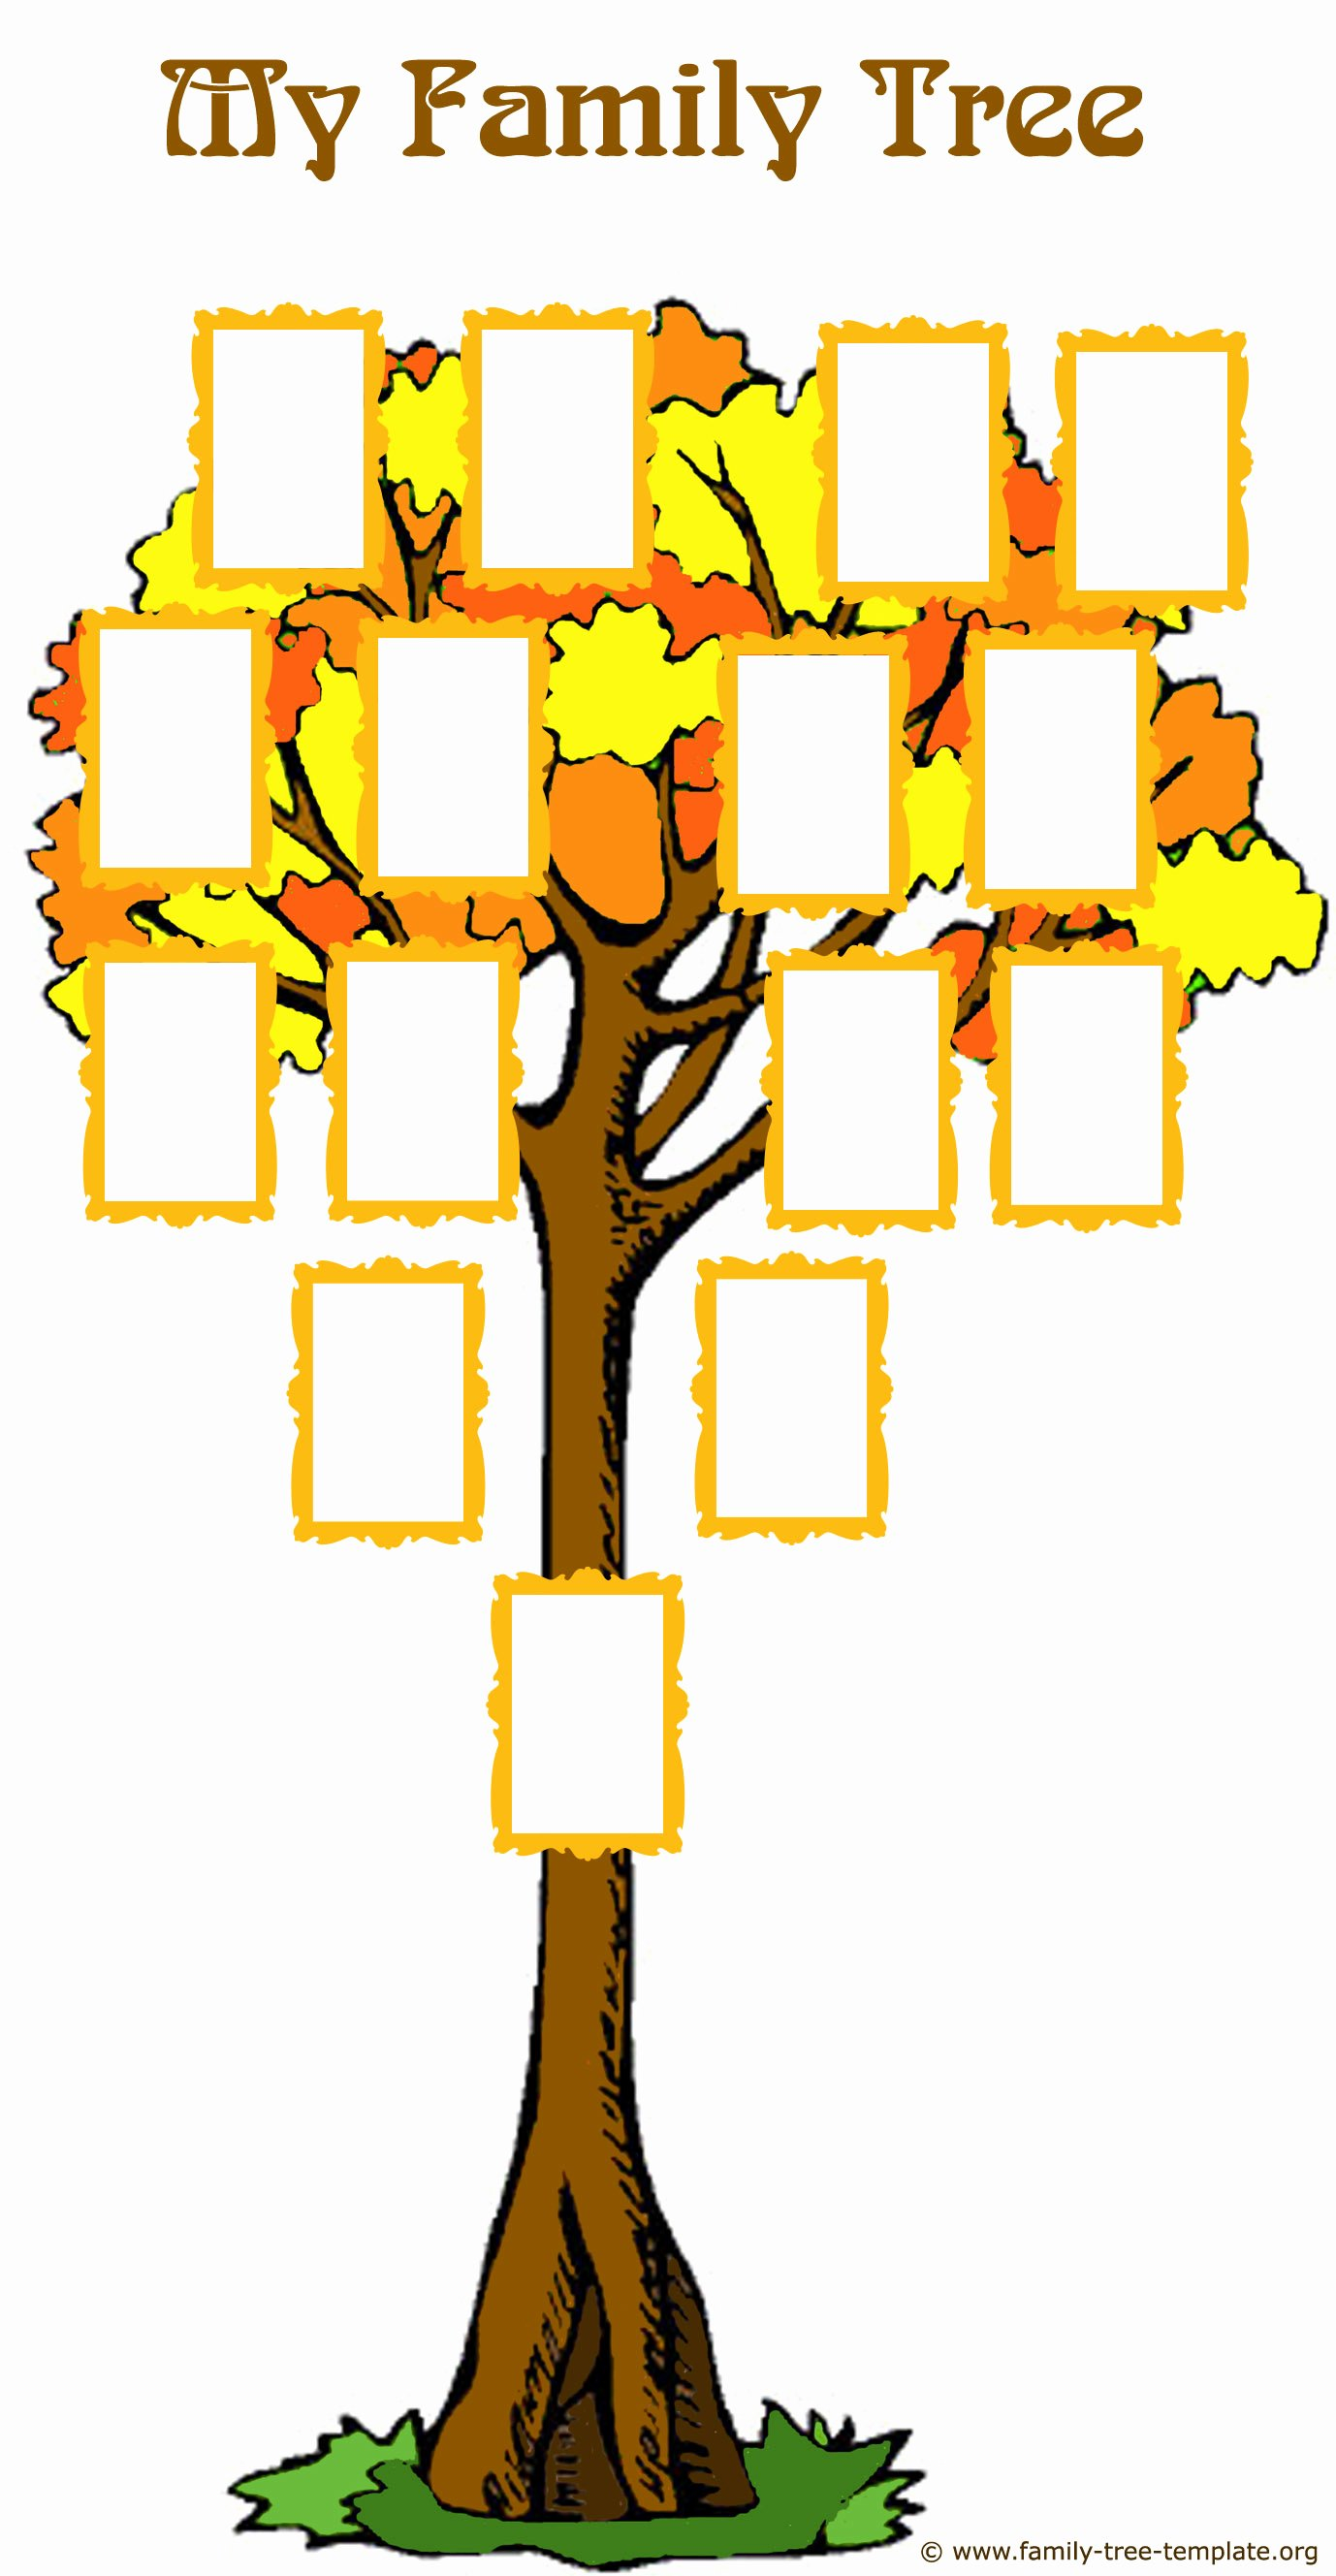 Family Tree Examples Images Luxury Fabulous Family Tree forms and Easy Genealogy Methods